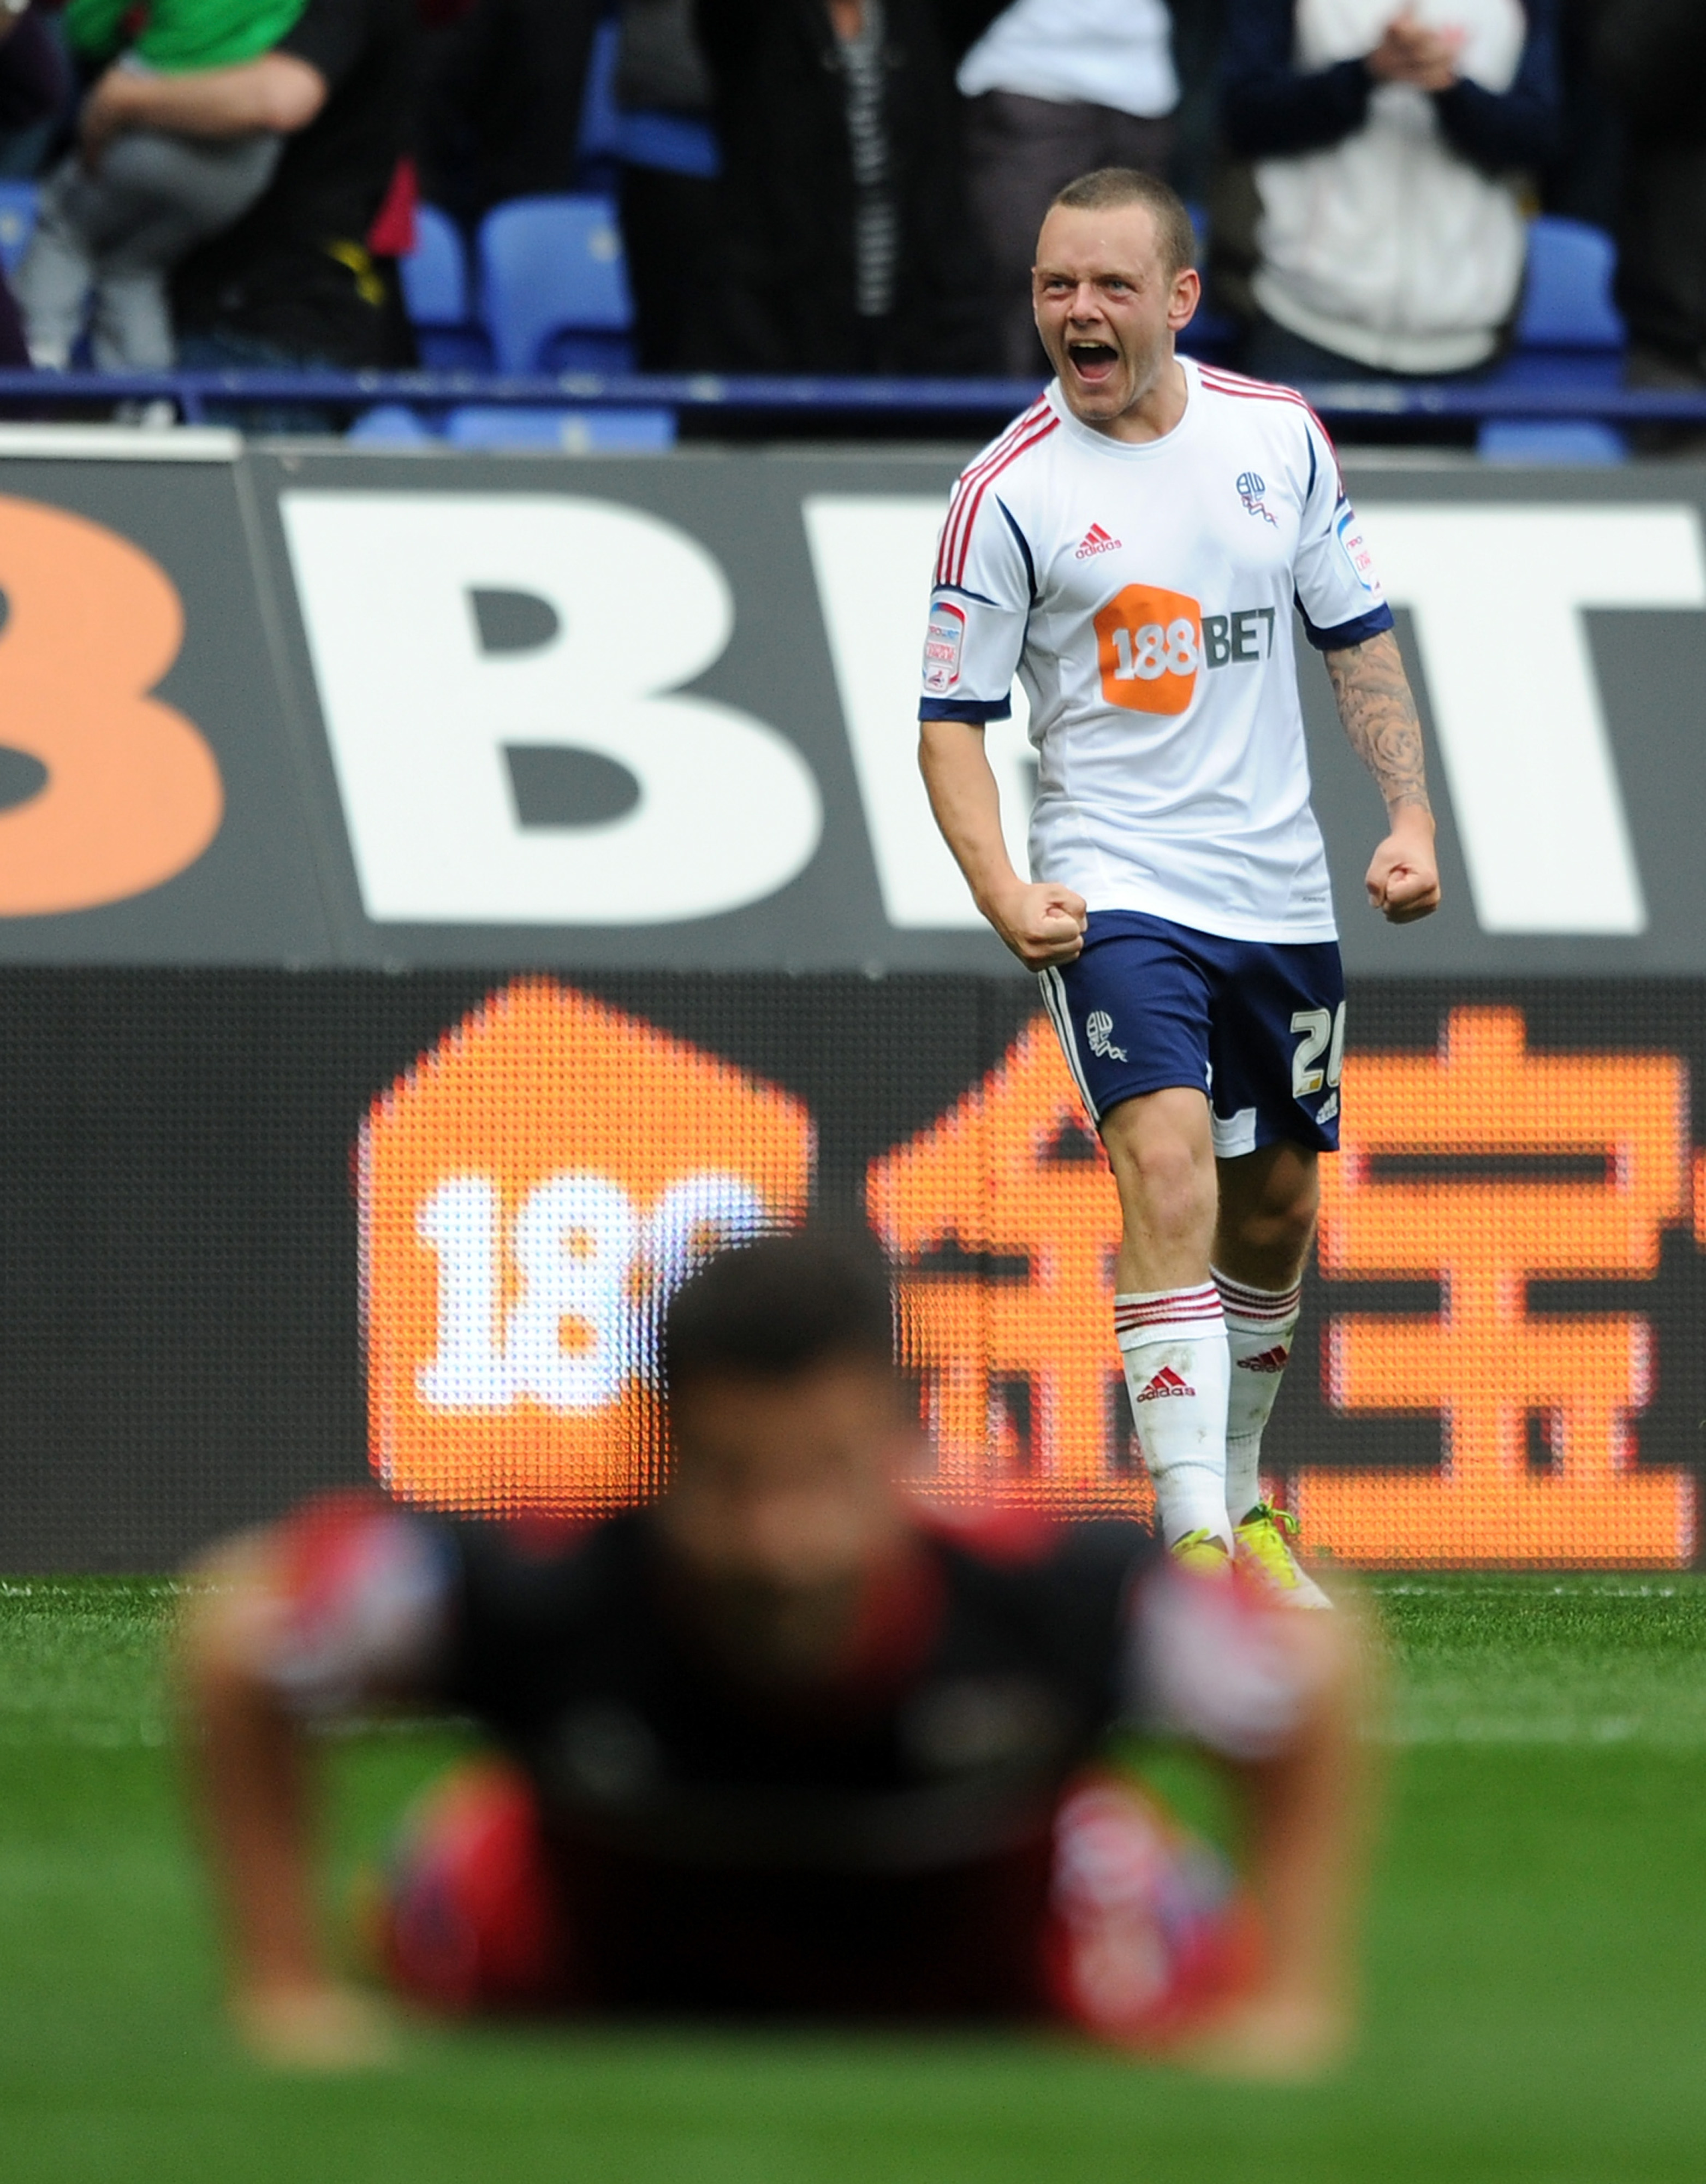 Spearing after scoring his first goal for the club against Bristol City.